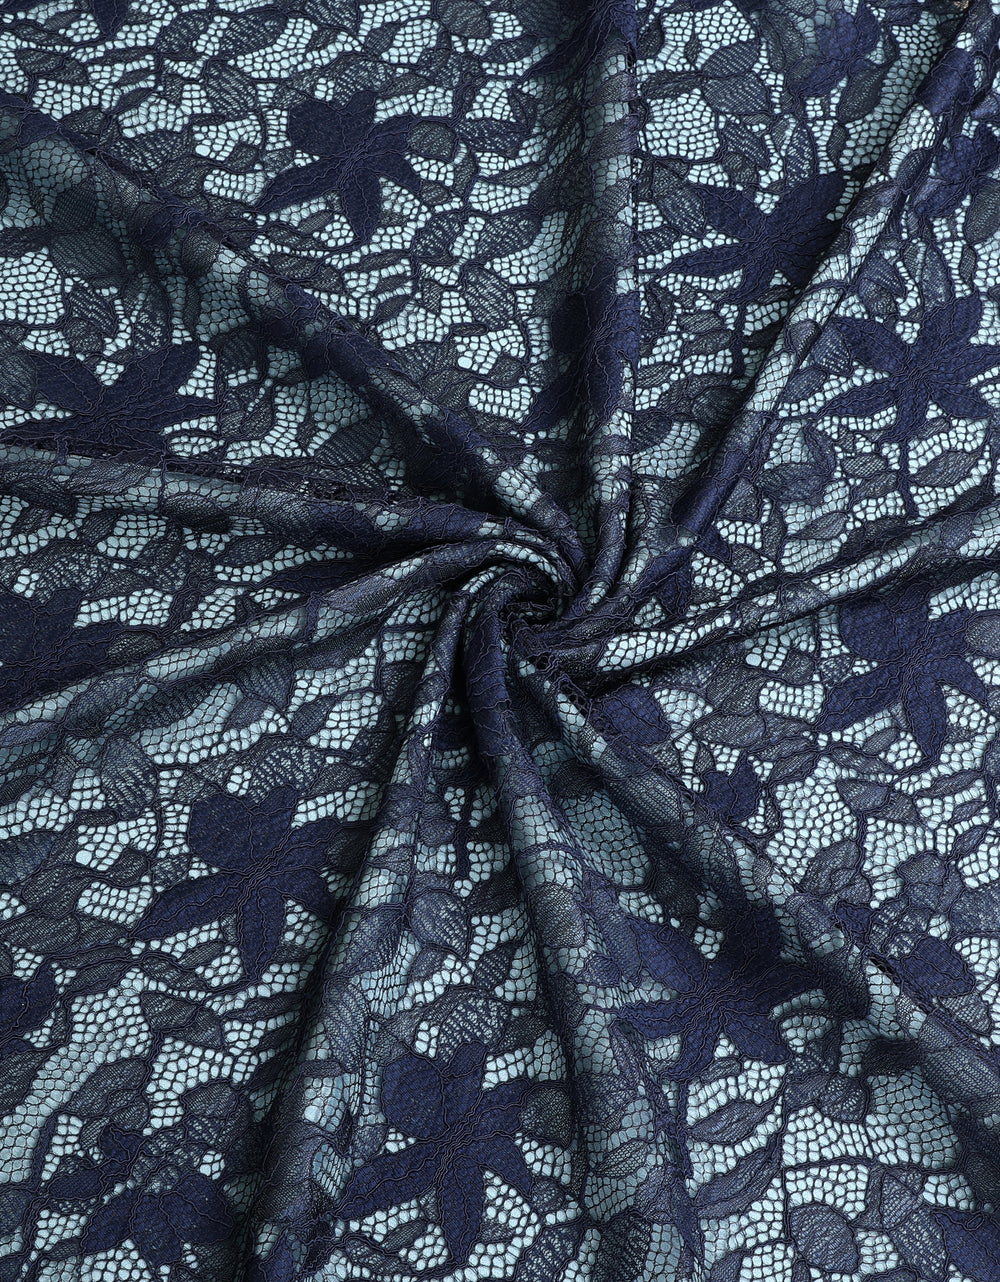 Single Tone Lace Navy Blue + Umo Crepe Casper Blue (Glitter Orchid)